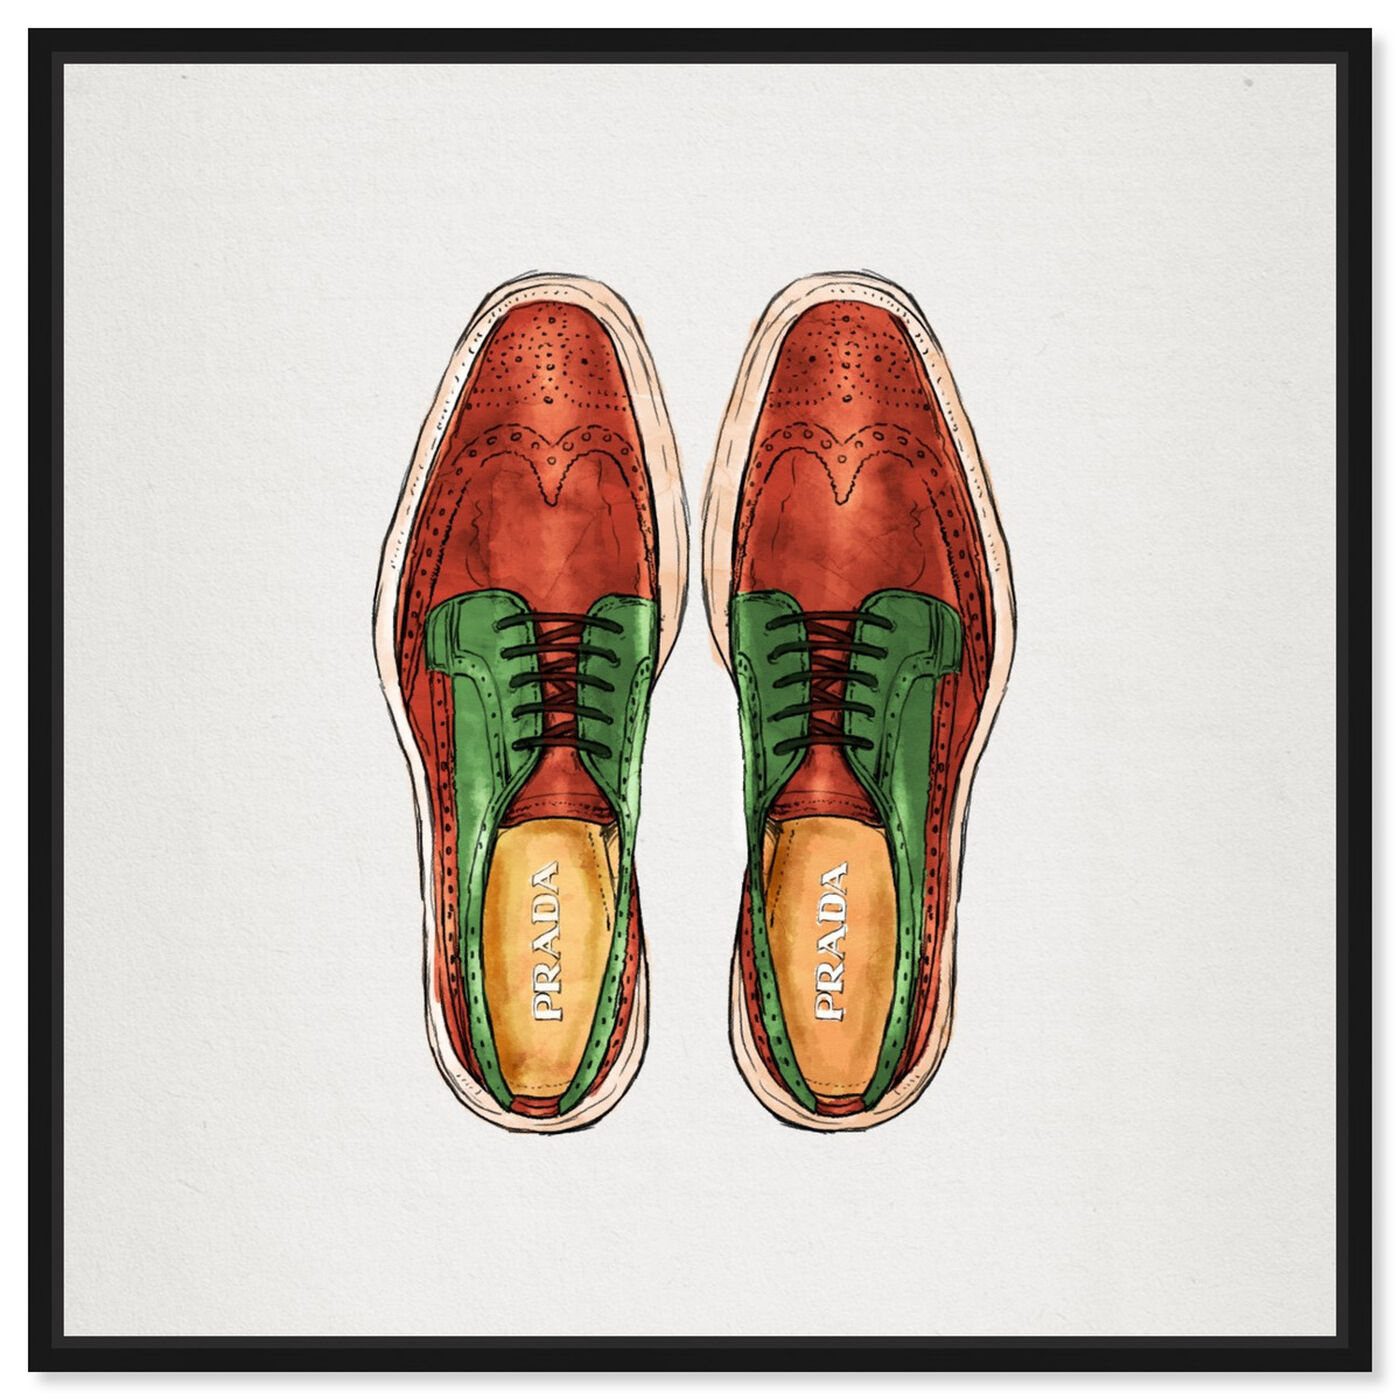 Front view of His Wingtips featuring fashion and glam and shoes art.